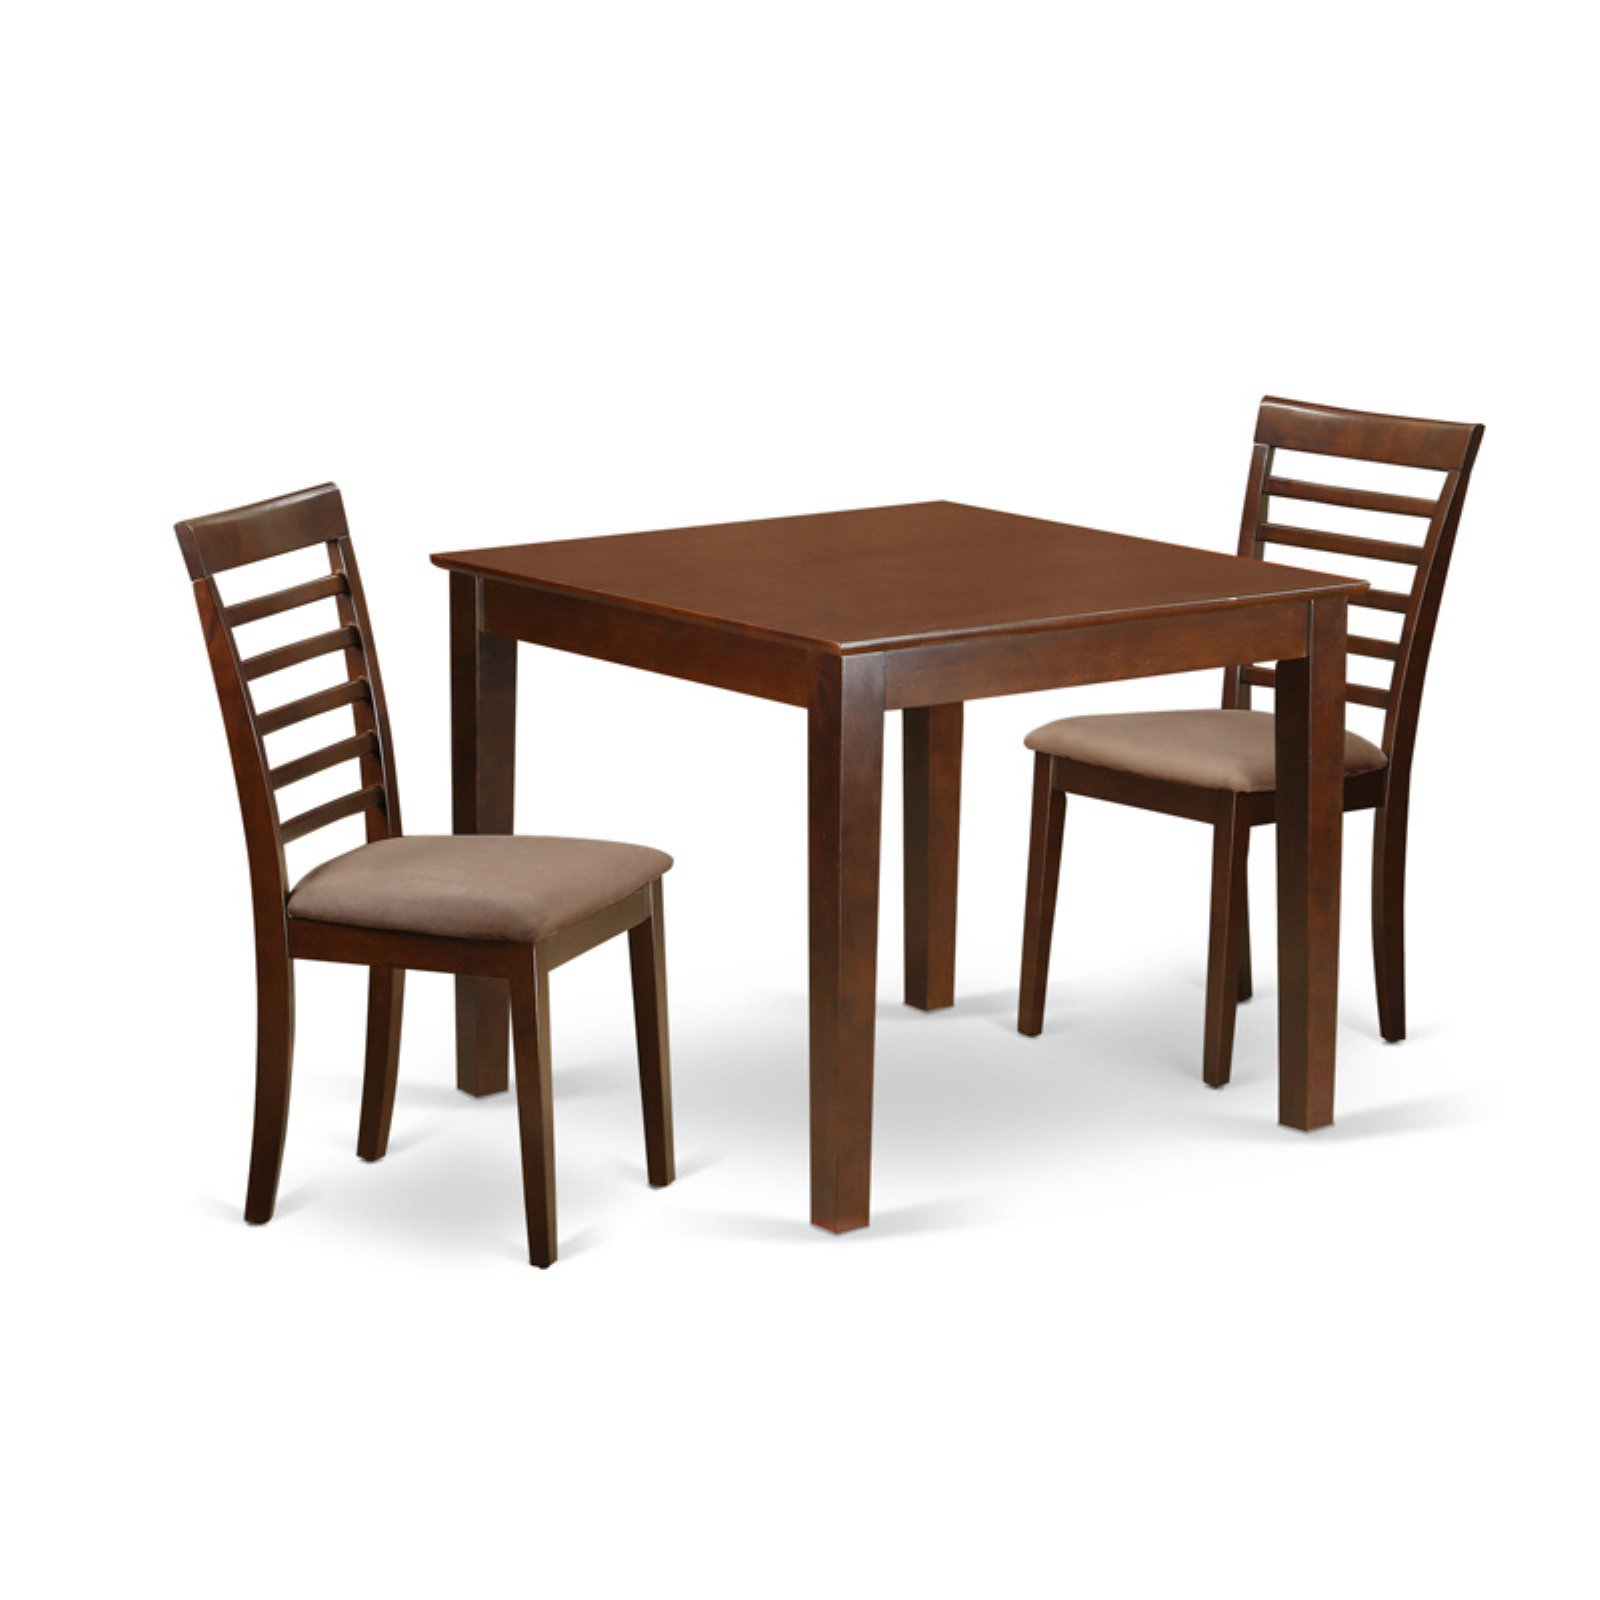 Smyrna 3 Piece Dining Sets With Regard To Fashionable East West Furniture 3 Piece Straight Ladderback Breakfast Nook (View 4 of 20)